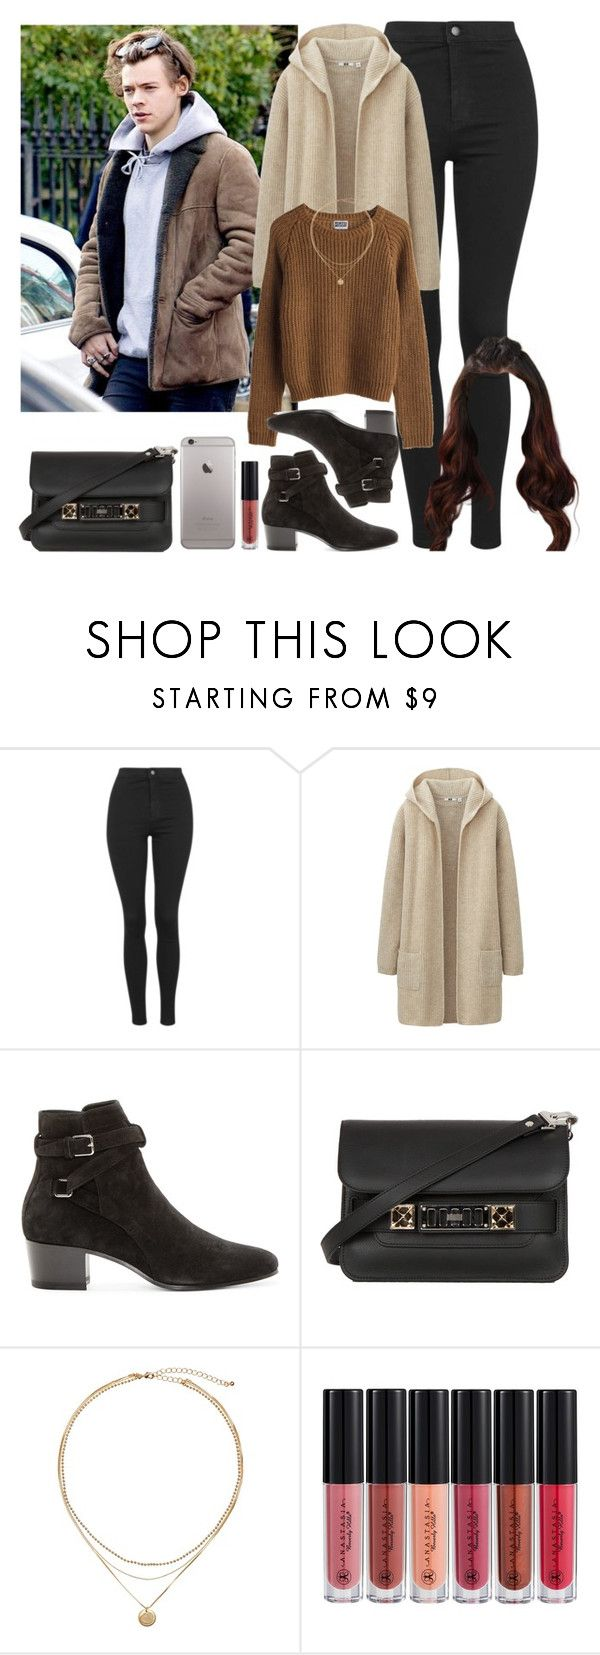 """London with Harry. -----> *Cynthia."" by imaginegirlsdsos ❤ liked on Polyvore featuring GET LOST, Topshop, Uniqlo, MTWTFSS Weekday, Yves Saint Laurent, Proenza Schouler and Anastasia Beverly Hills"